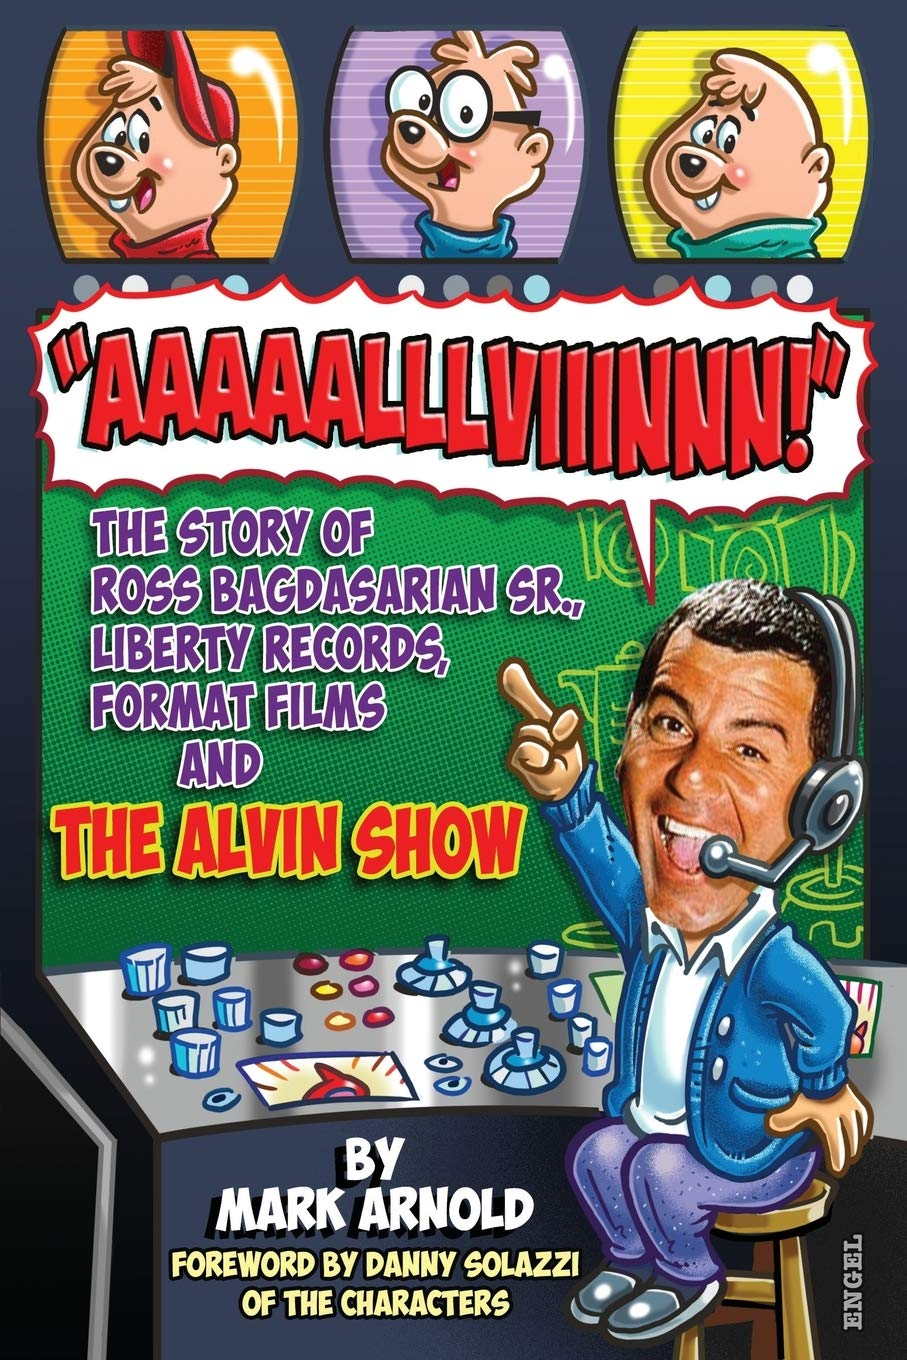 Amazon   Aaaaalllviiinnn!: The Story of Ross Bagdasarian, Sr., Liberty  Records, Format Films and The Alvin Show   Arnold, Mark, Solazzi, Danny    Comedy